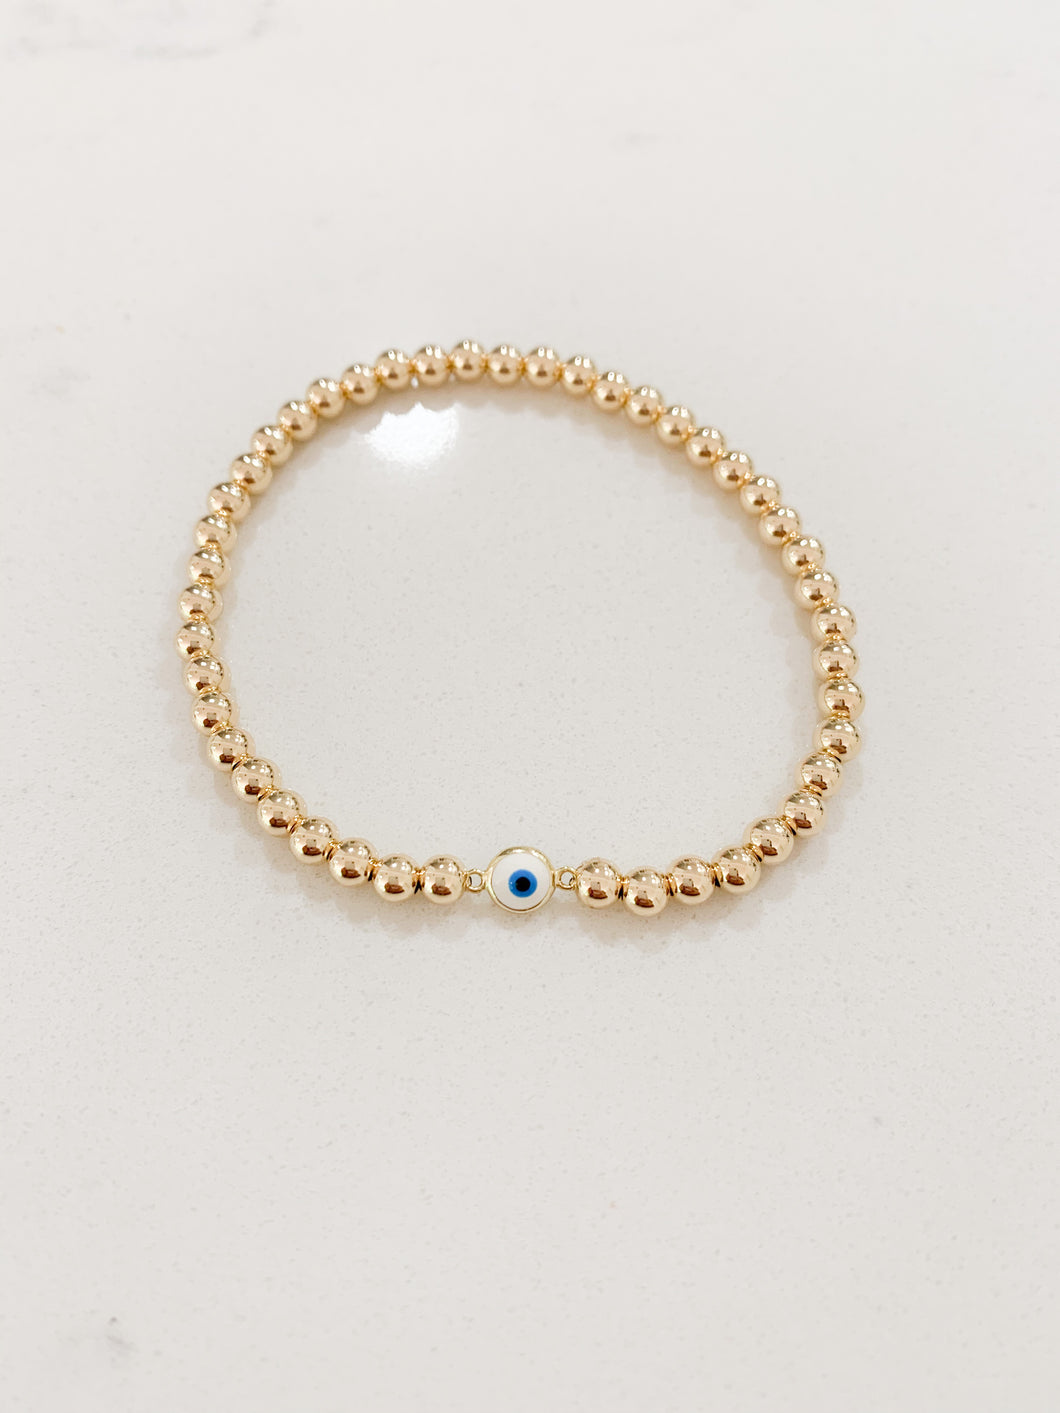 Tiny Evil Eye Bracelet- Gold Beads